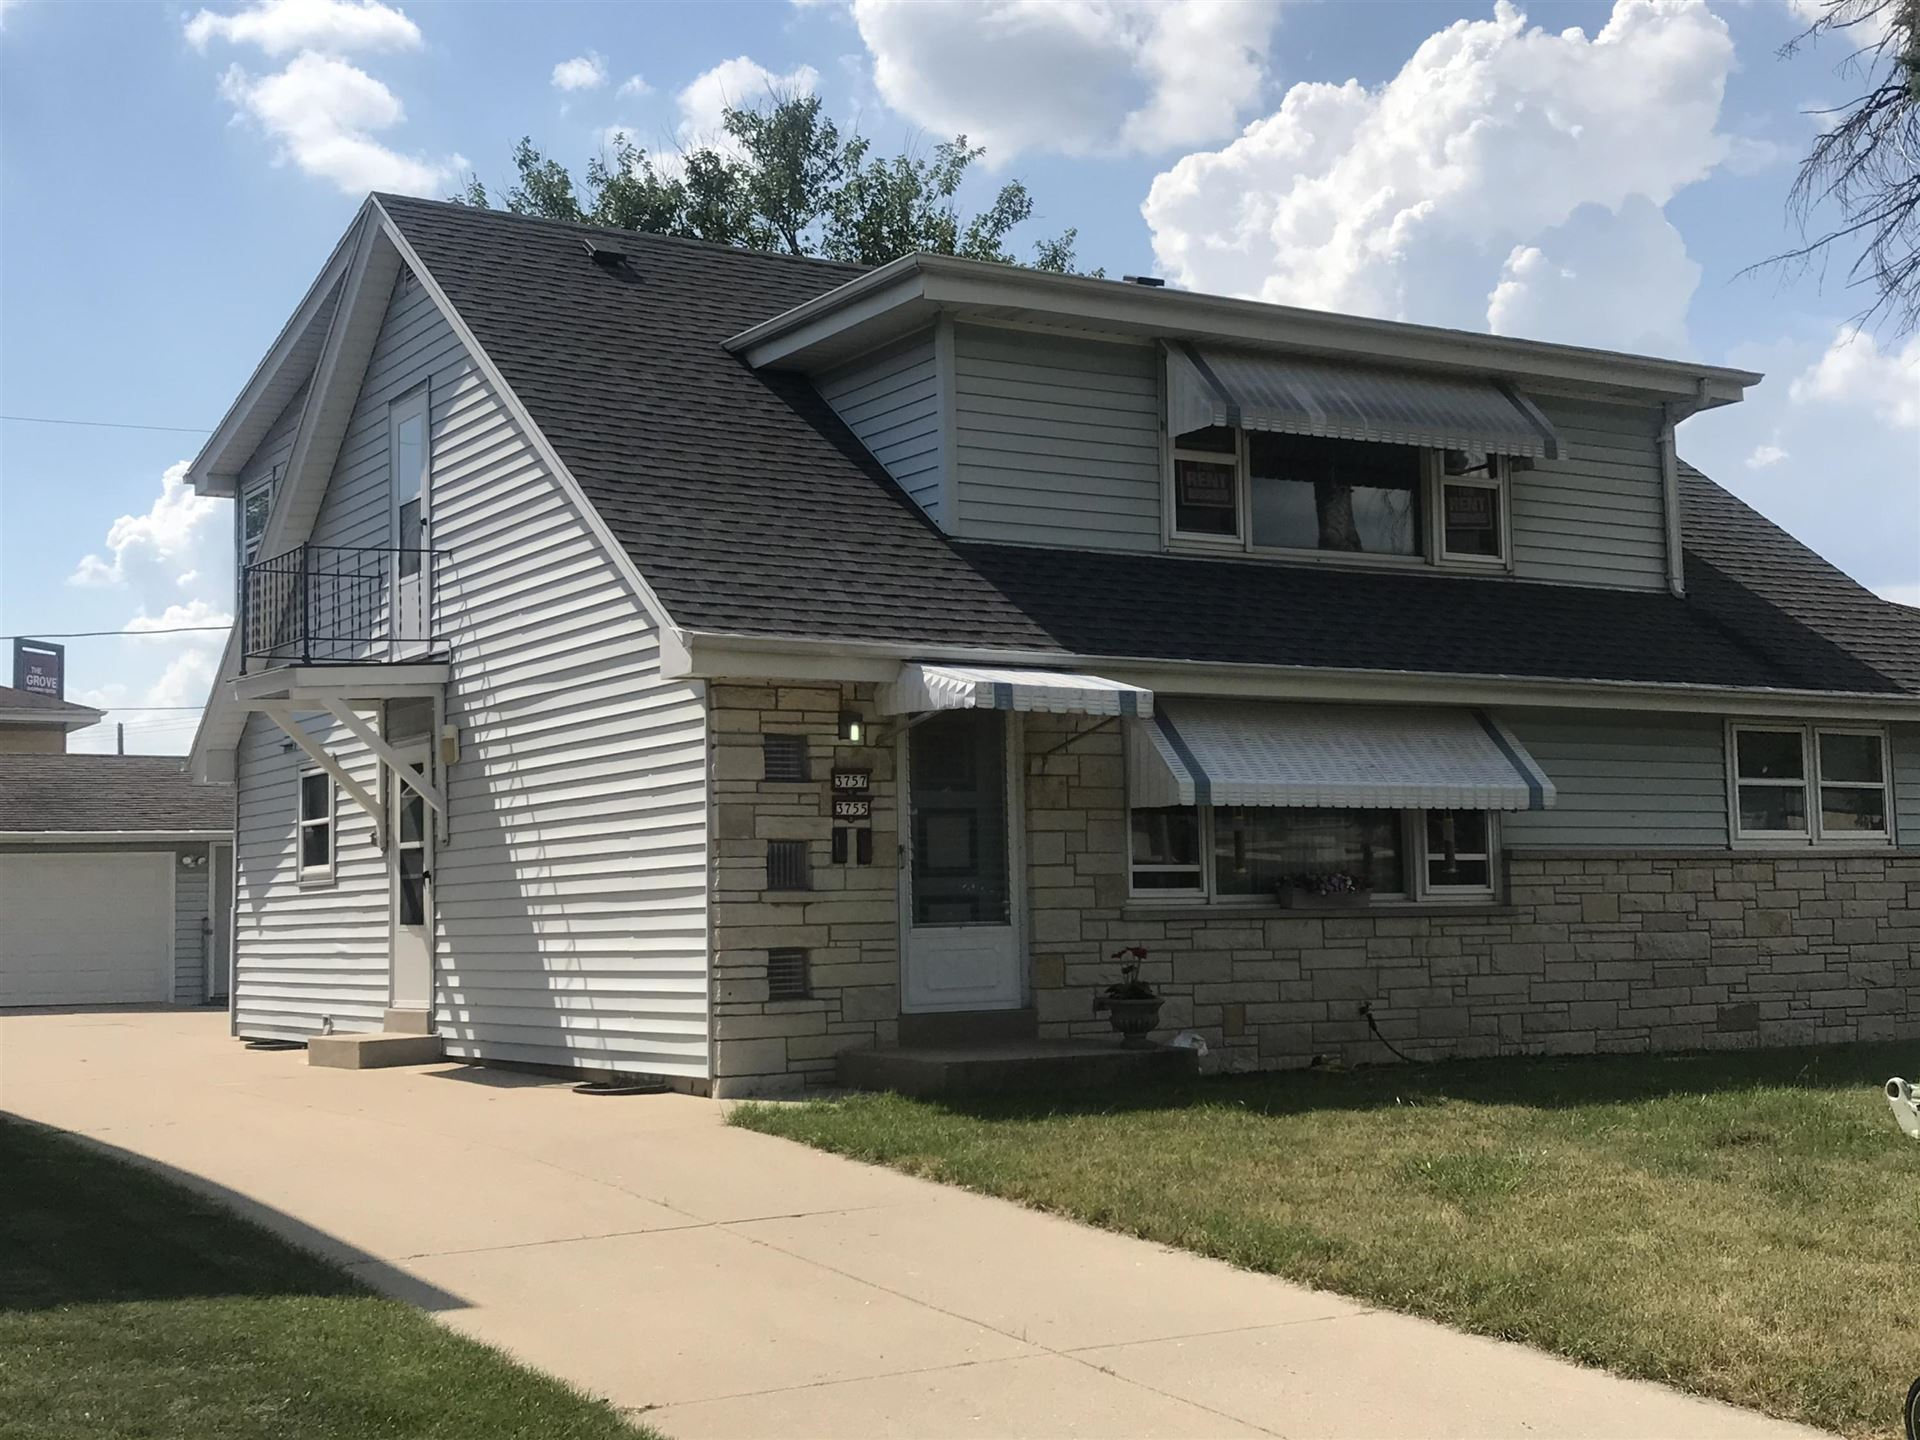 3755-57 S 58th, Milwaukee, WI 53220 - #: 1697647